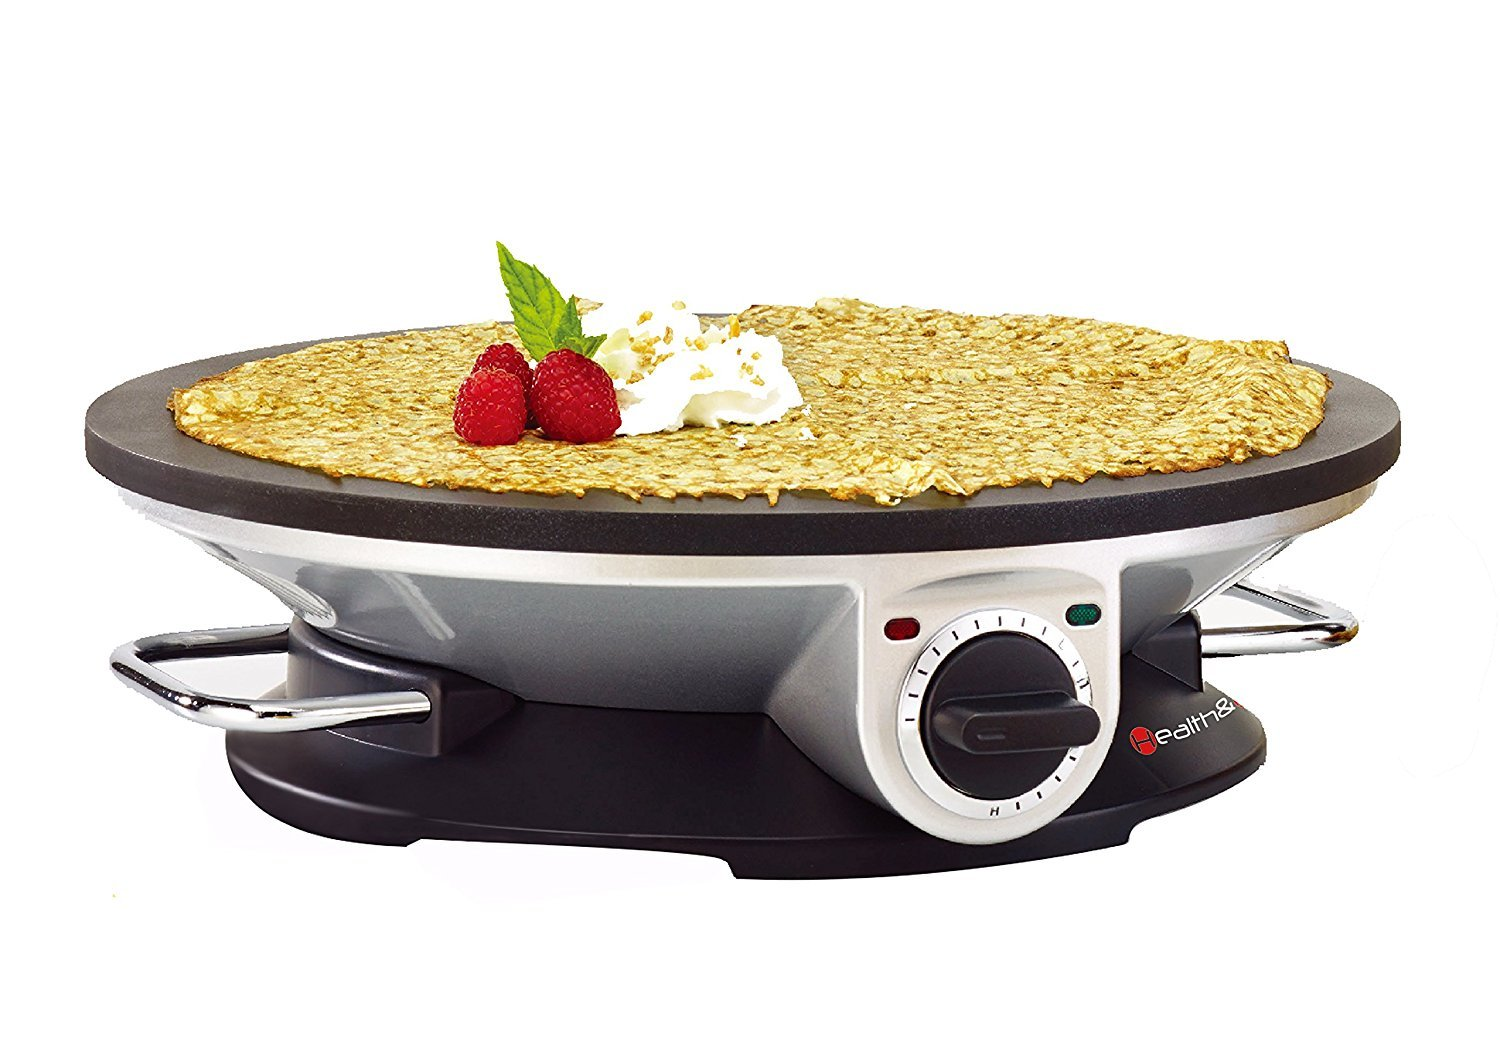 Health and Home No Edge Crepe Maker - 13 Inch Crepe Maker & Electric Griddle - Non-stick Pancake Maker- Waffle Maker- Crepe Pan by Health and Home COMINHKPR148712